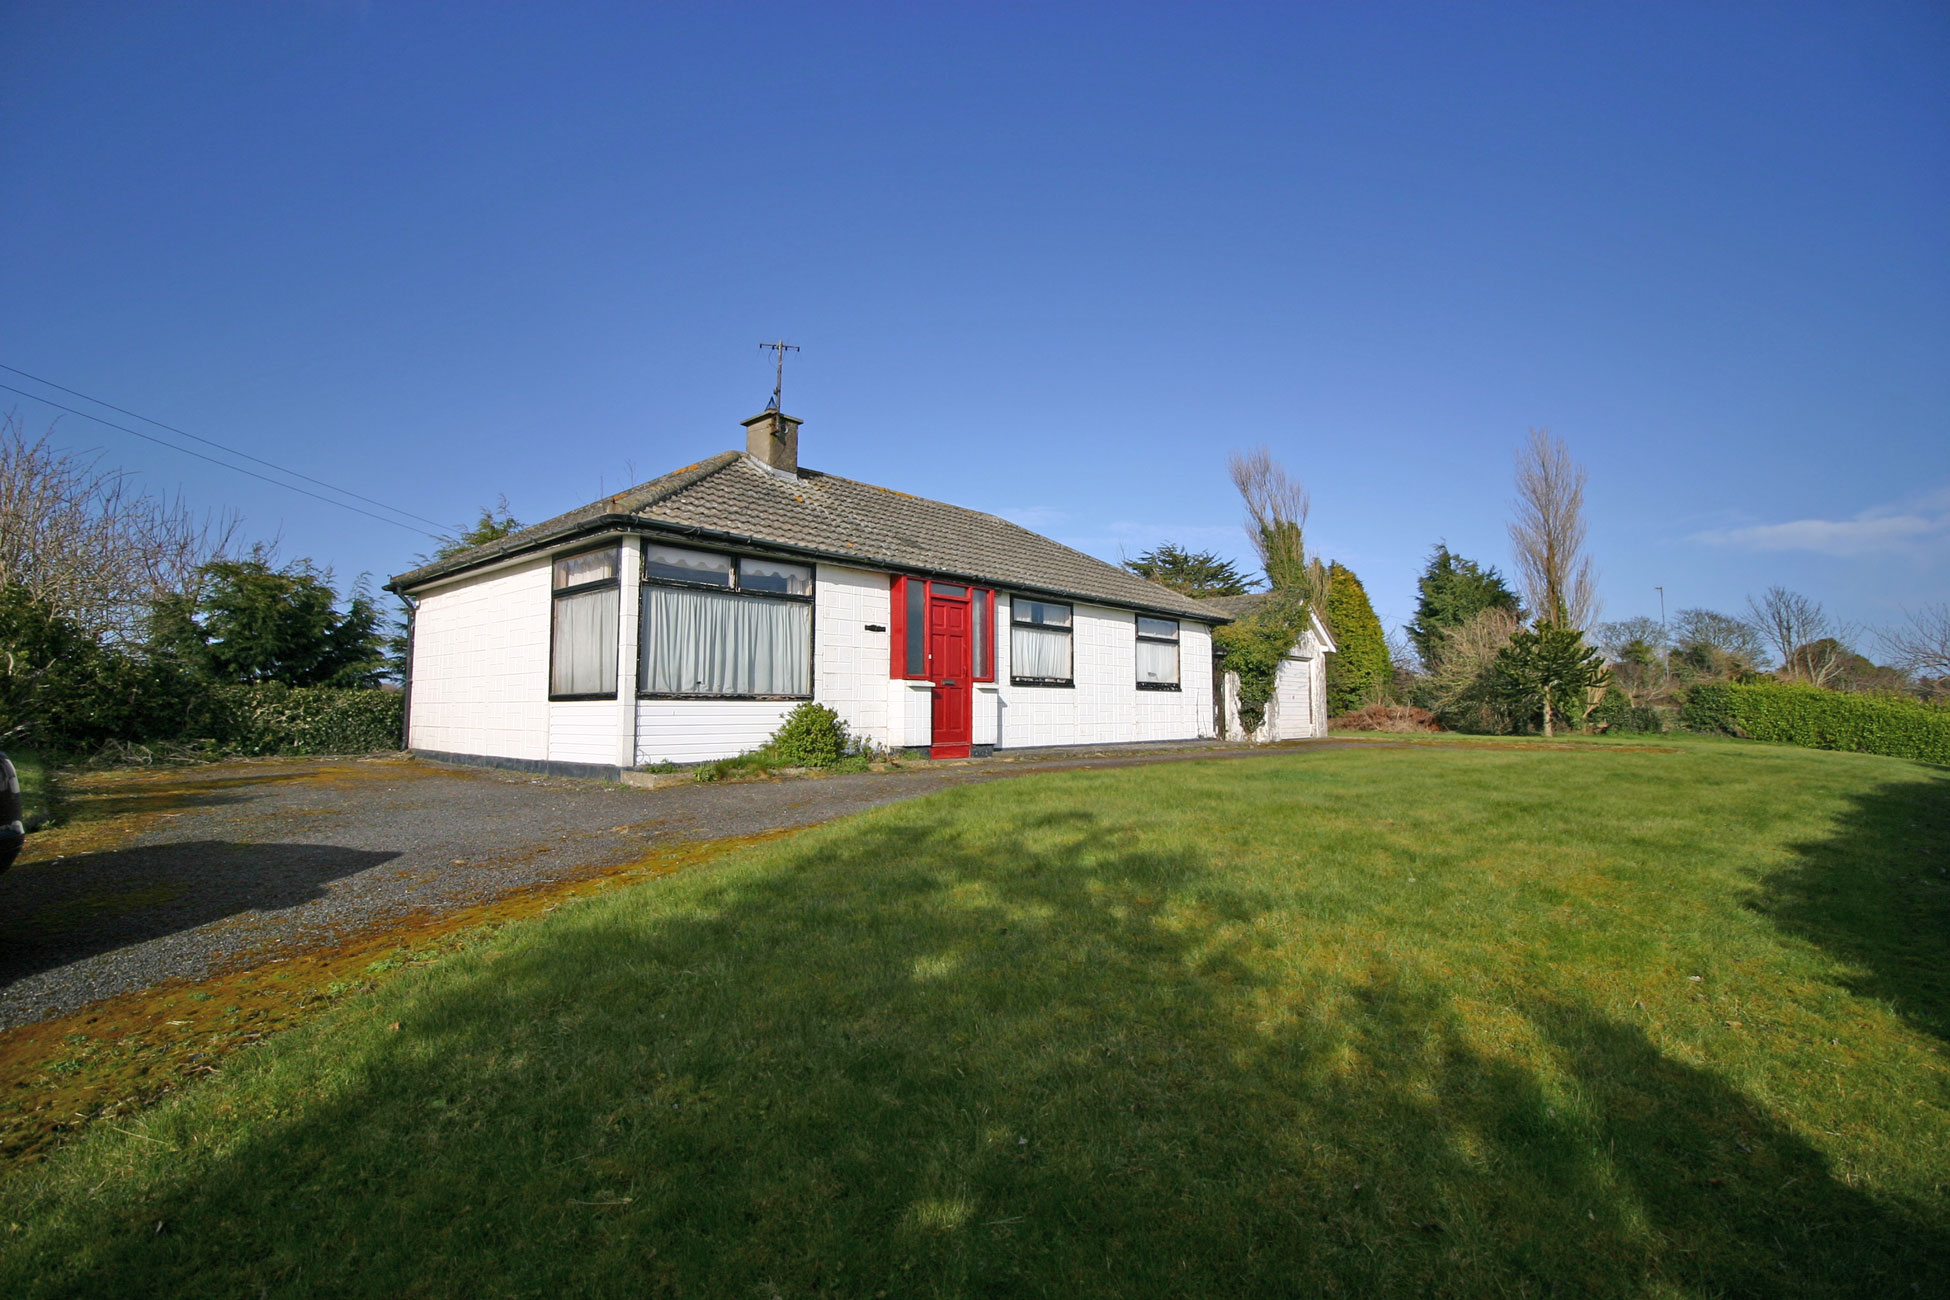 Glenrush, Baltray, Drogheda, Co. Louth